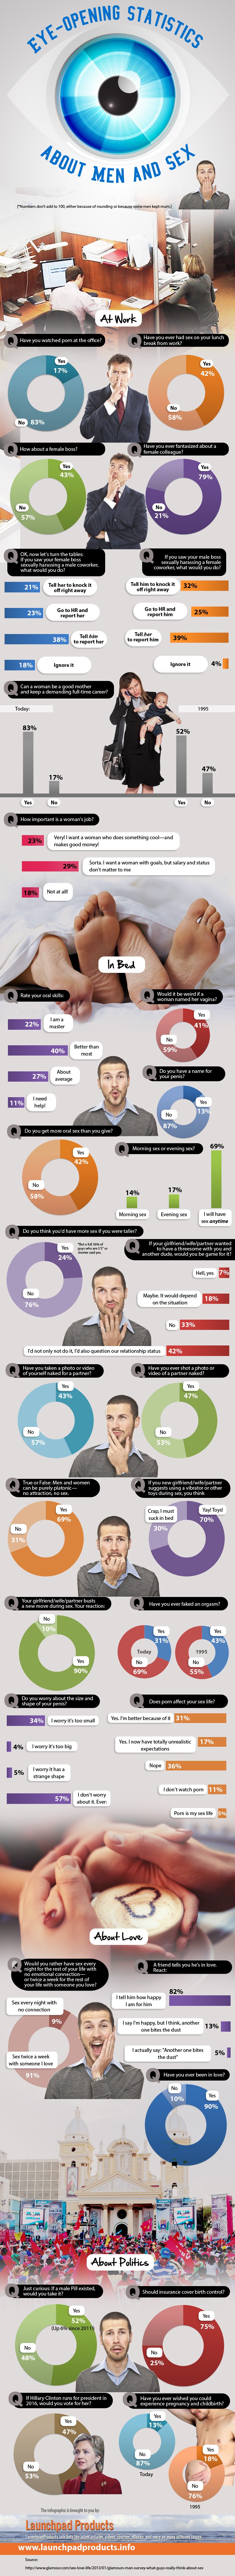 Eye-Opening Statistics About Men and Sex